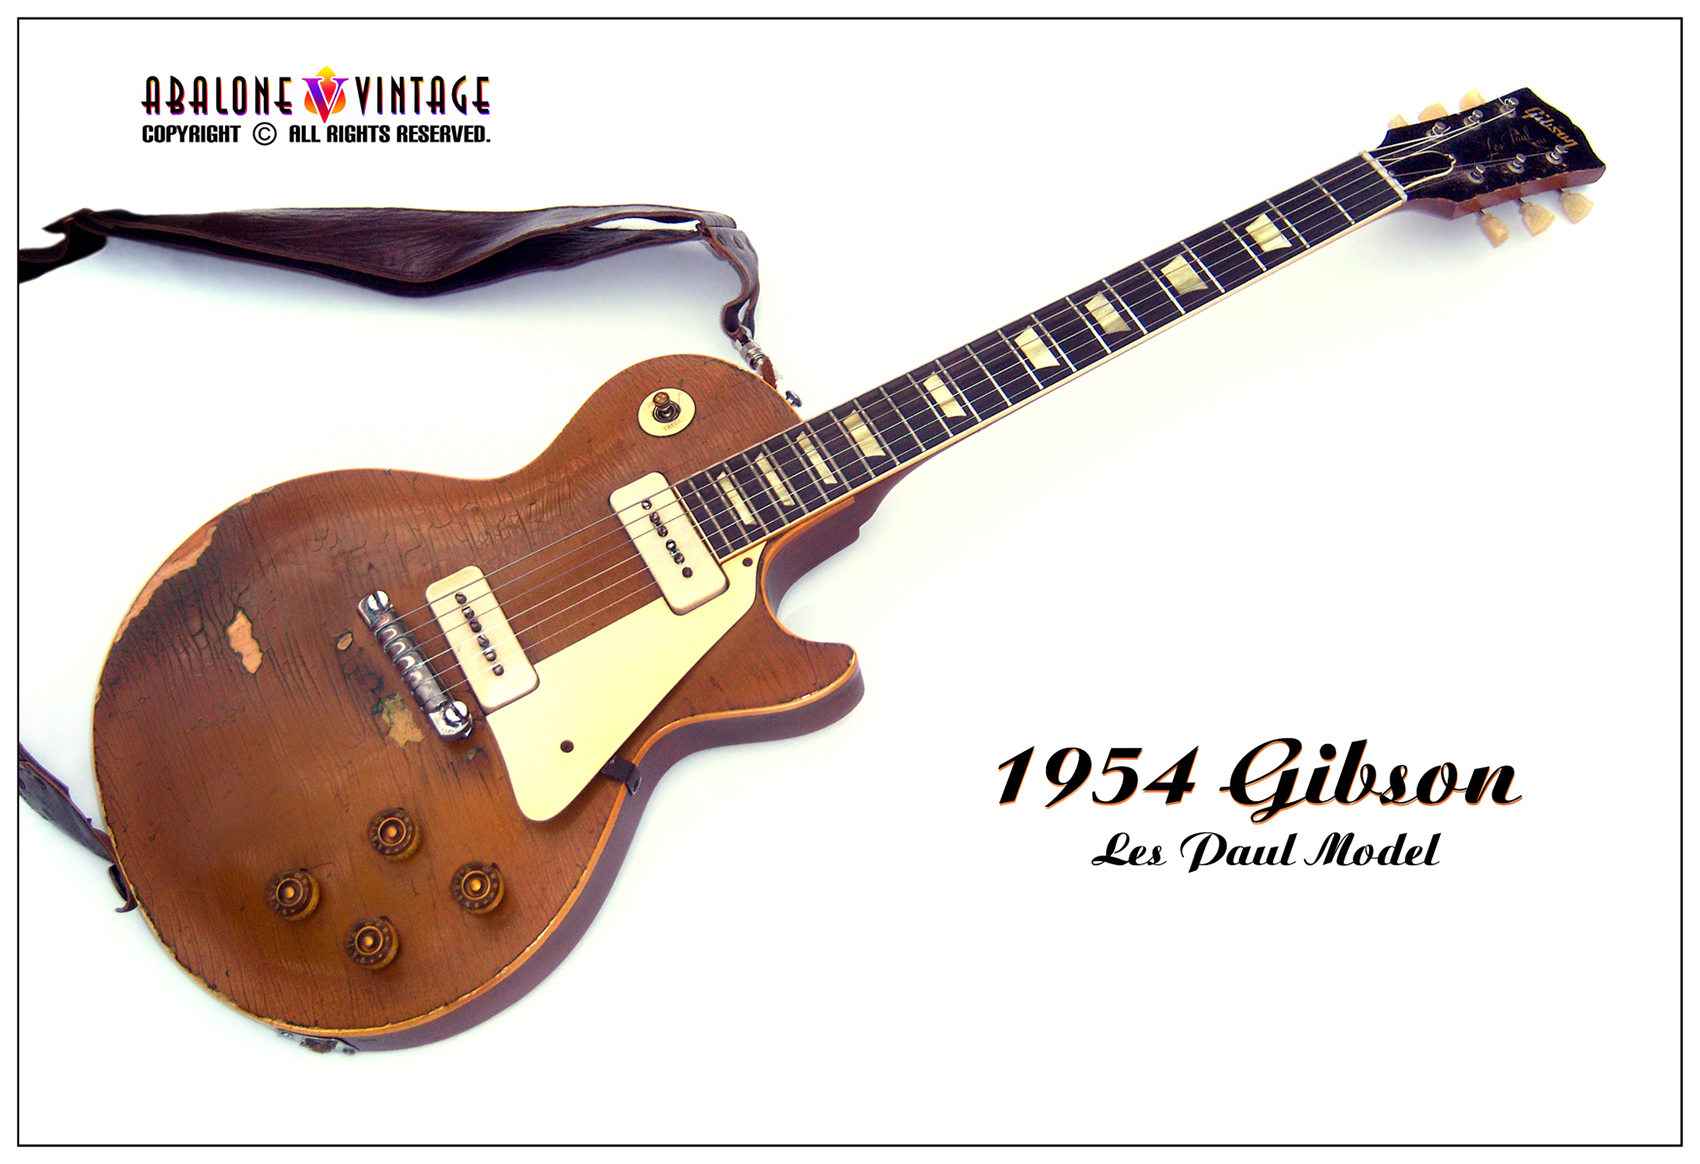 1954 Gibson Les Paul Standard Model Guitar. The well loved and worn road warrior.